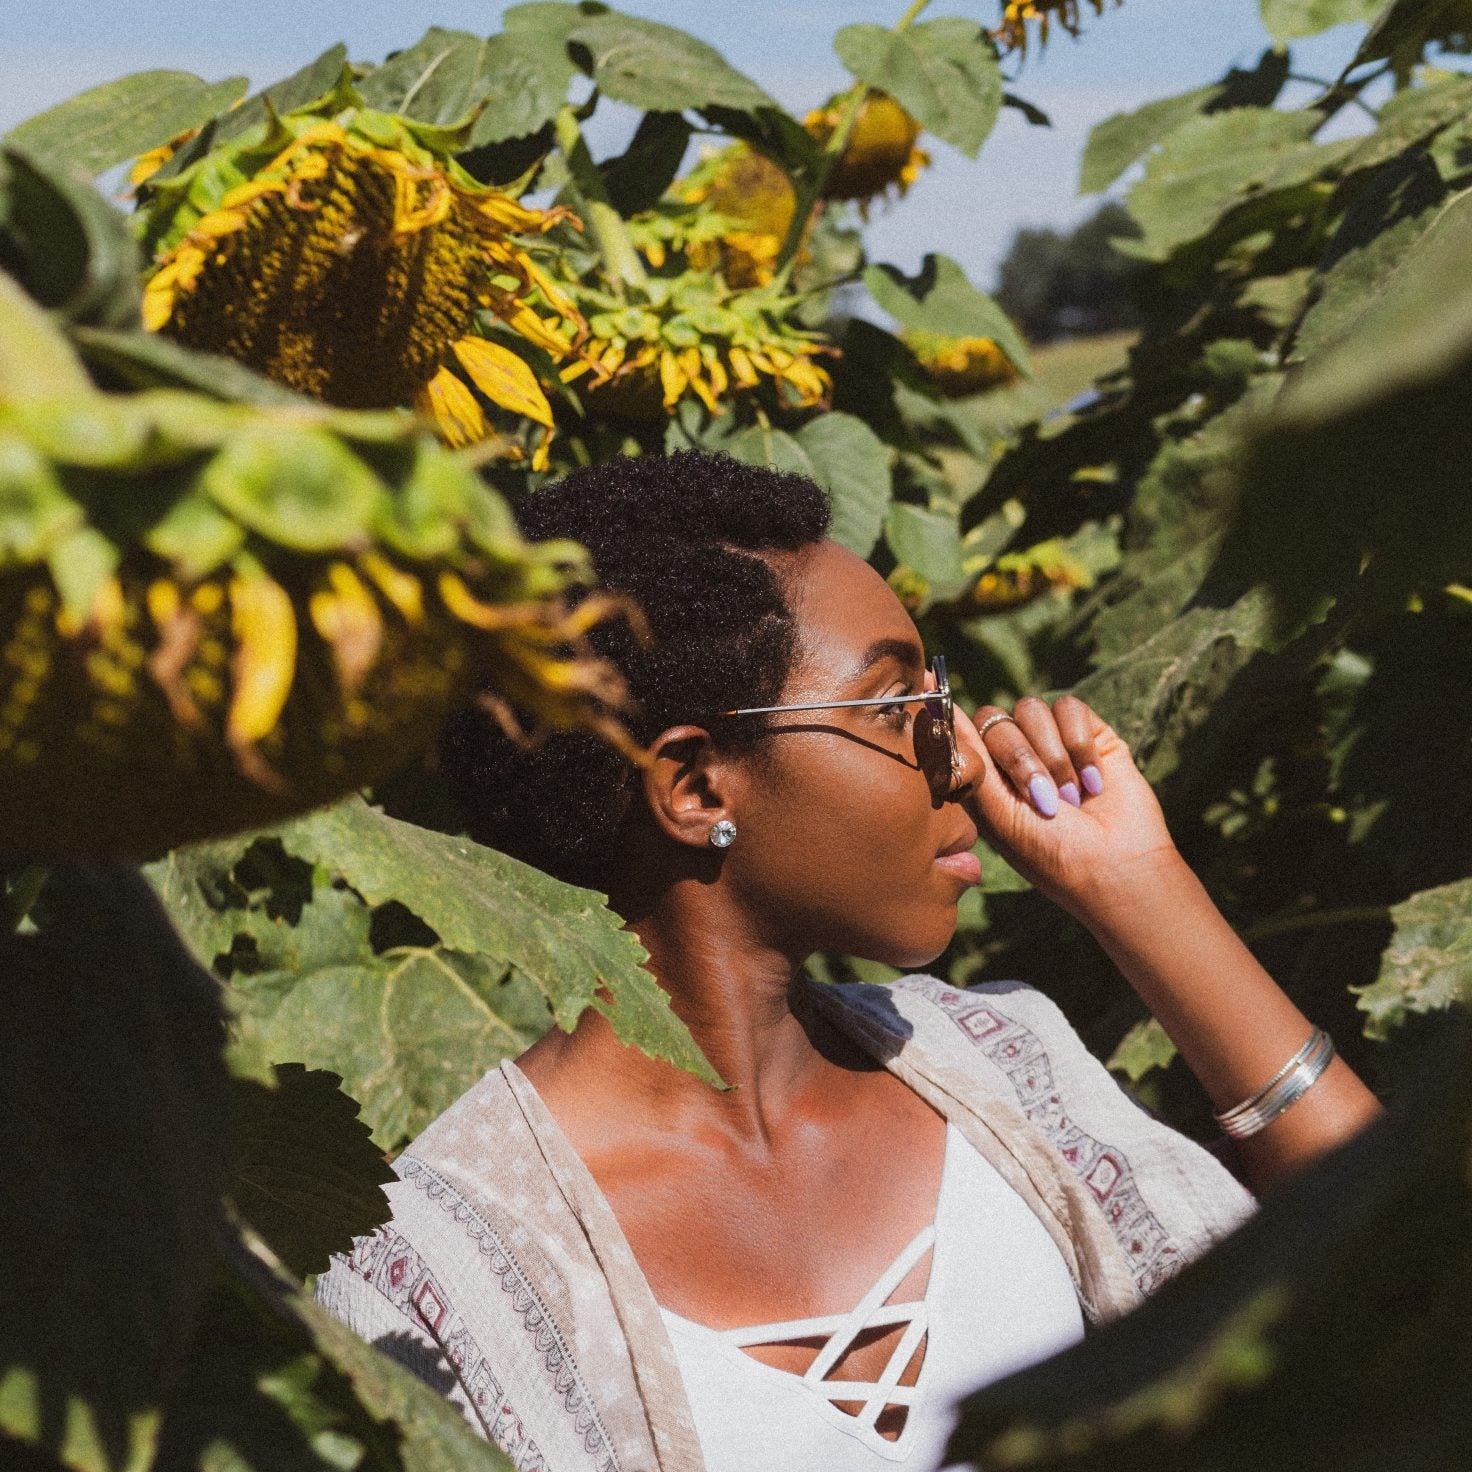 #InstaViral: Melanin and Sustainable Style Is Putting Black People At The Forefront Of The Sustainability Movement